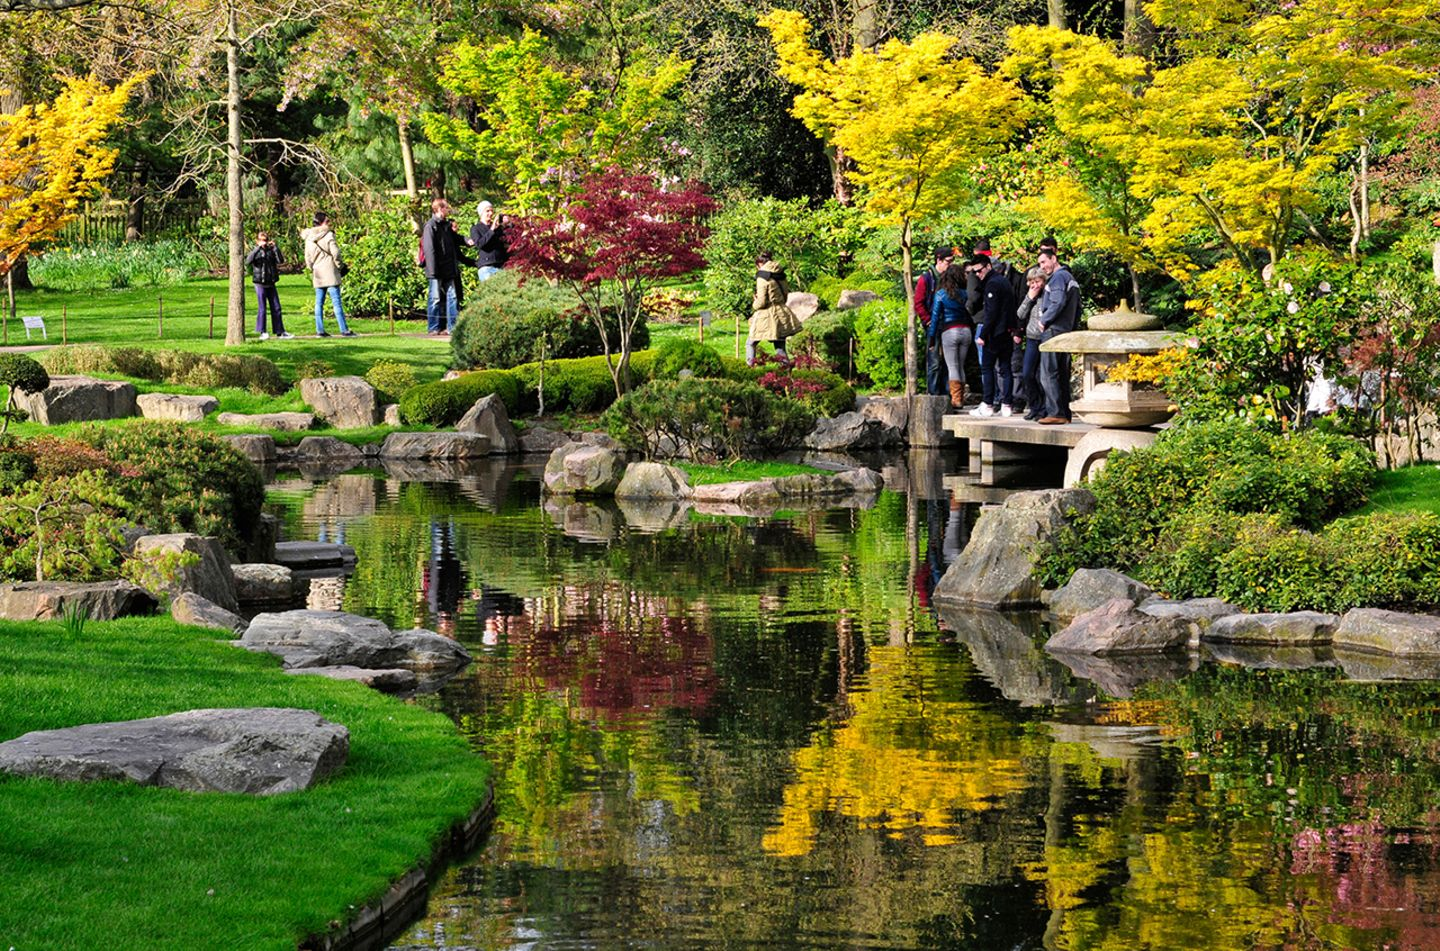 Holland Park in London